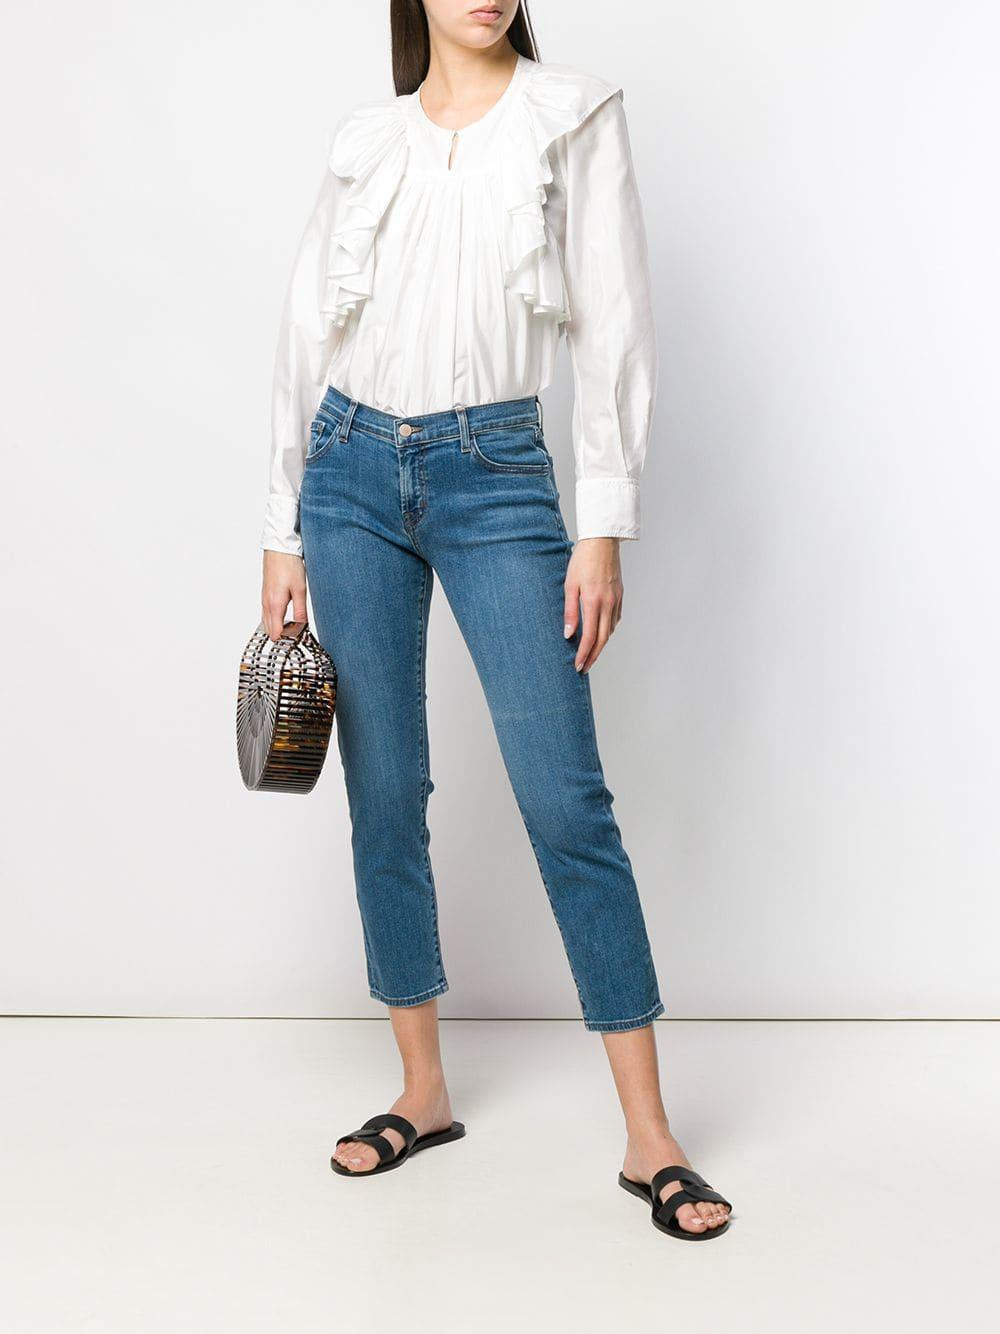 c4725cde1416 Lyst - J Brand Slim-fit Cropped Jeans in Blue